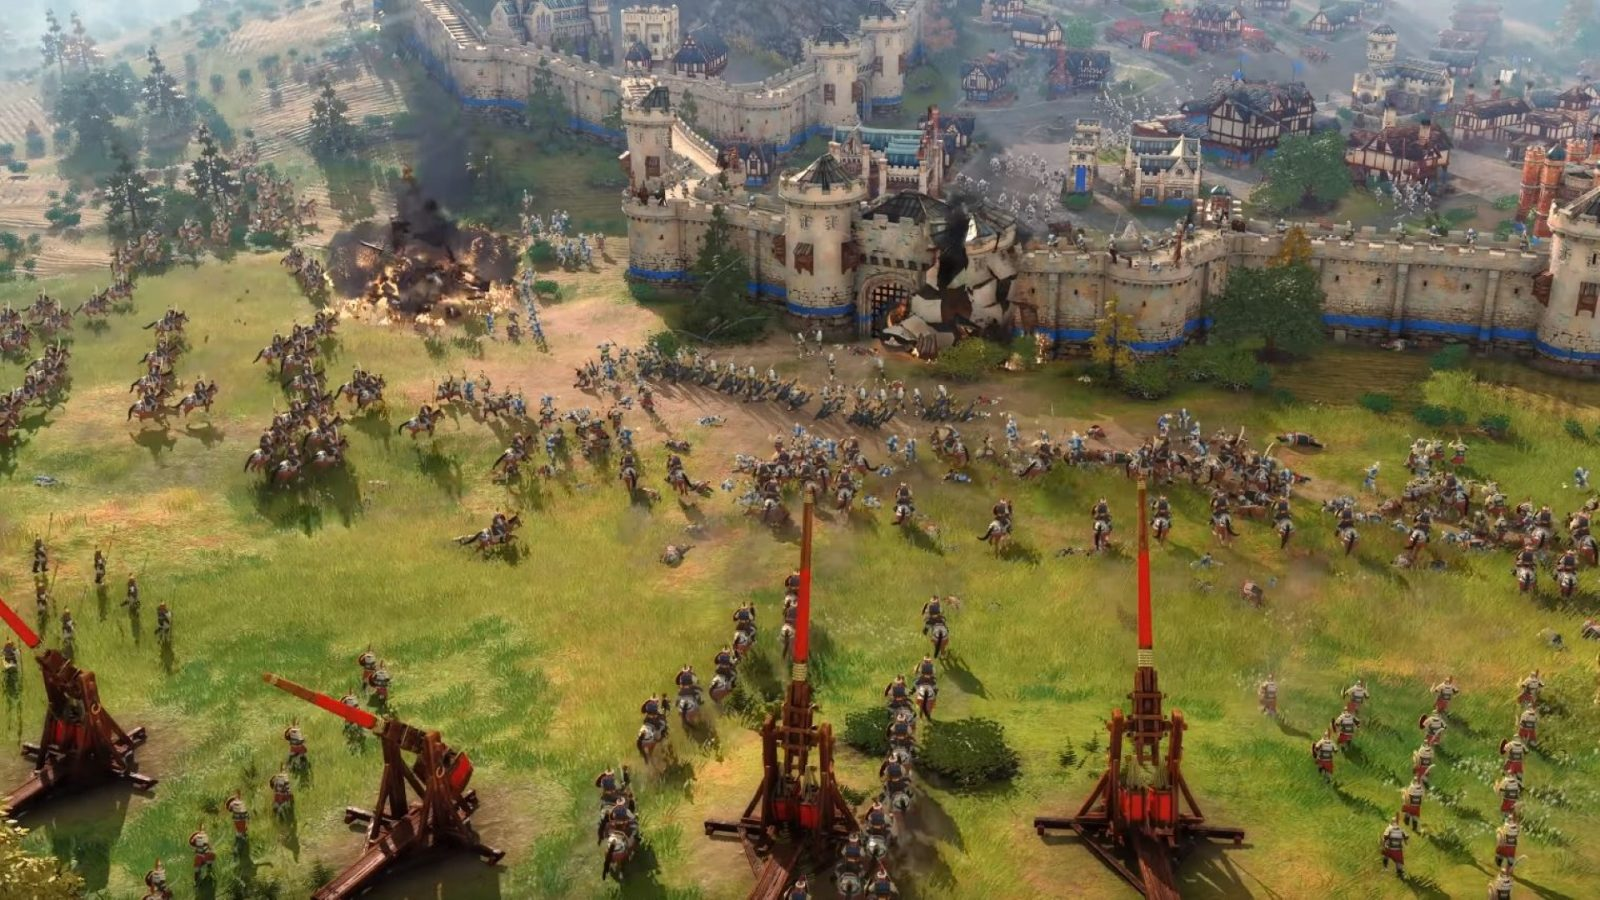 Here's why Age of Empires 4 doesn't have environmental destruction – sort of